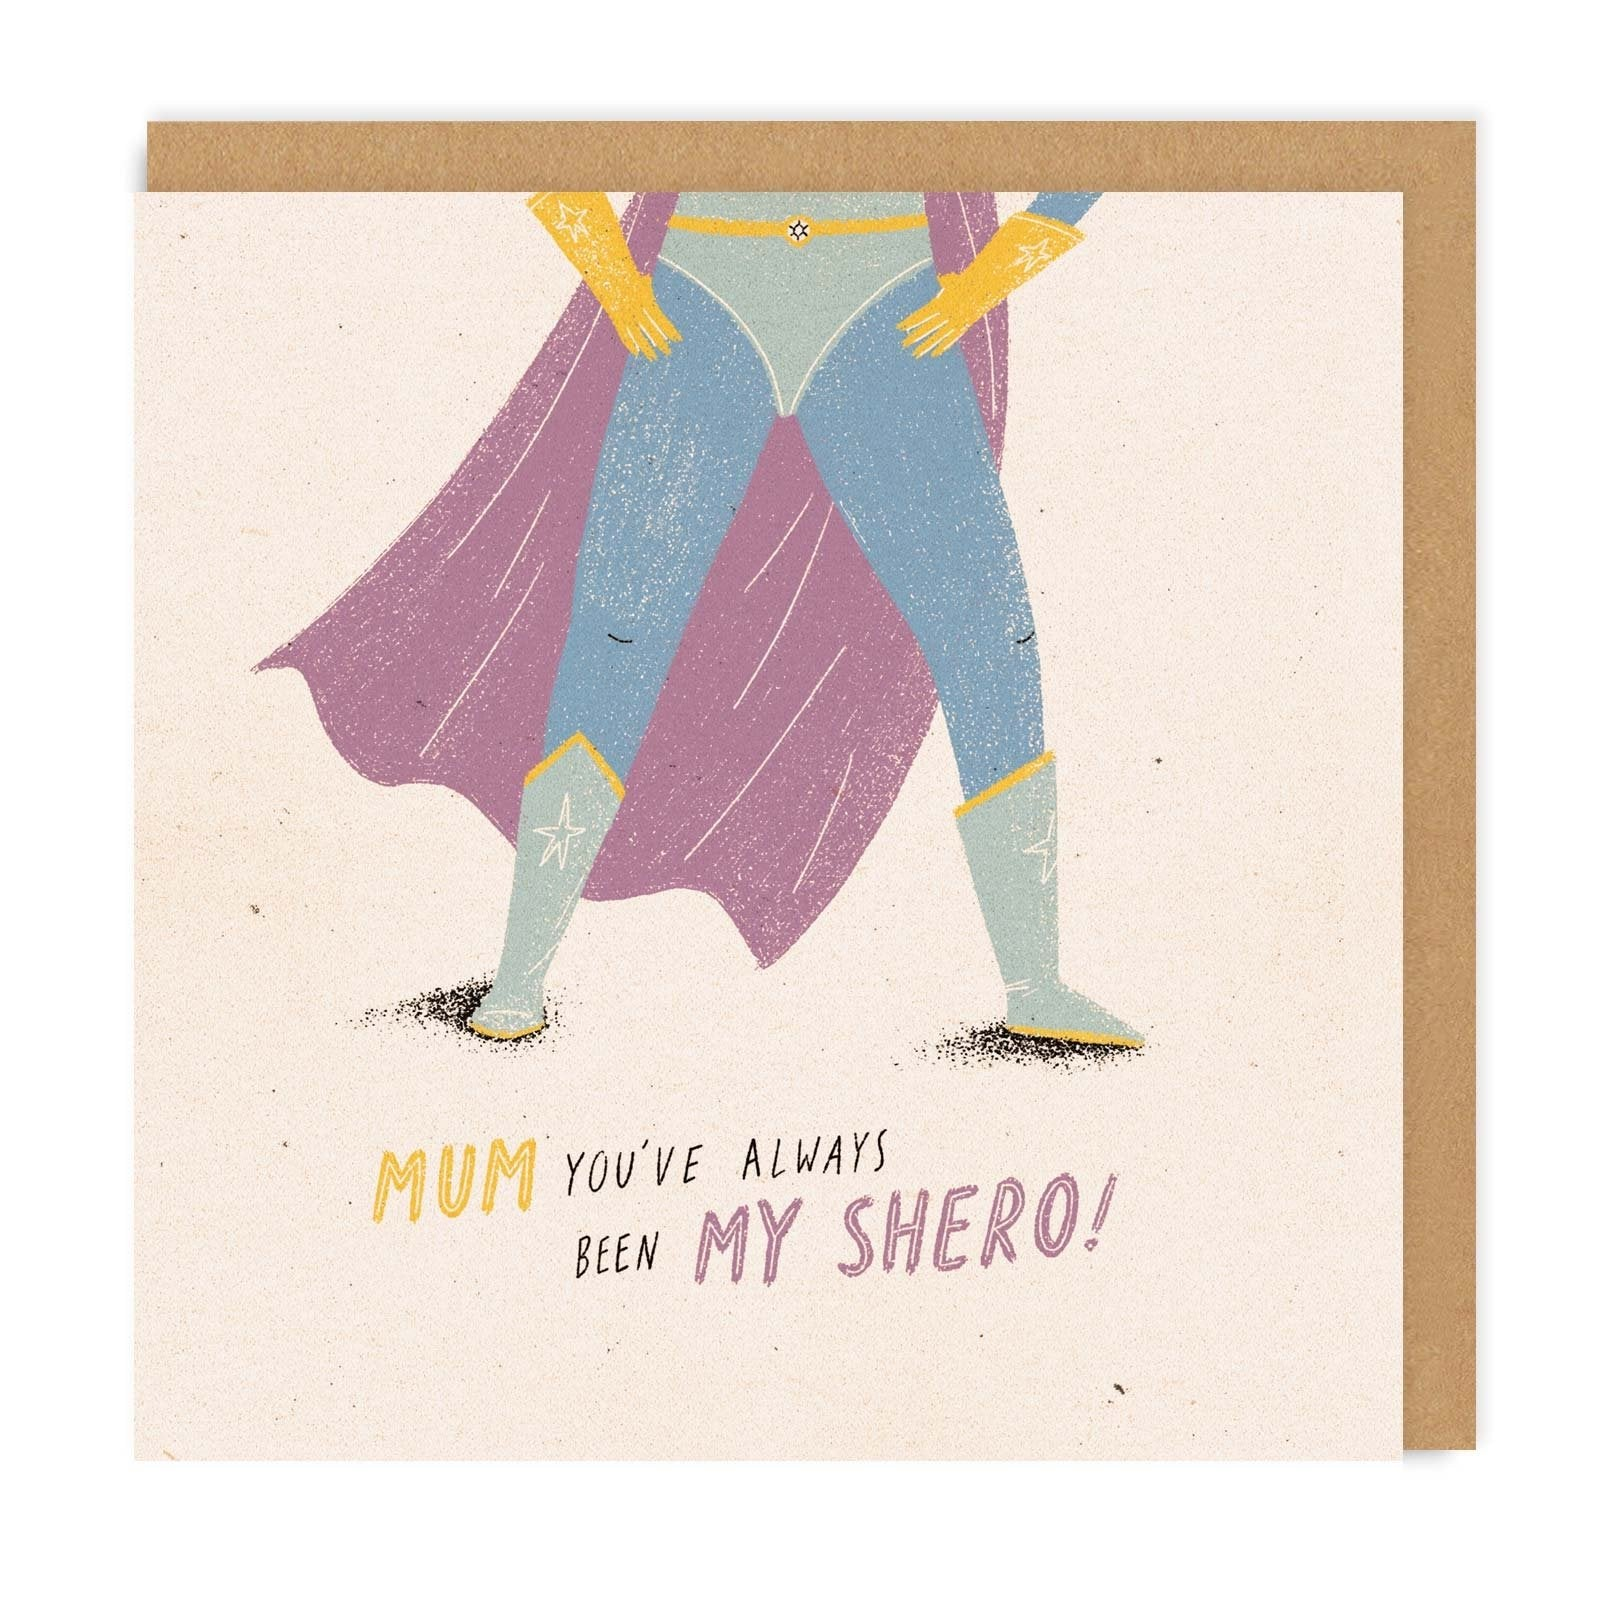 Mum, My Shero Square Greeting Card